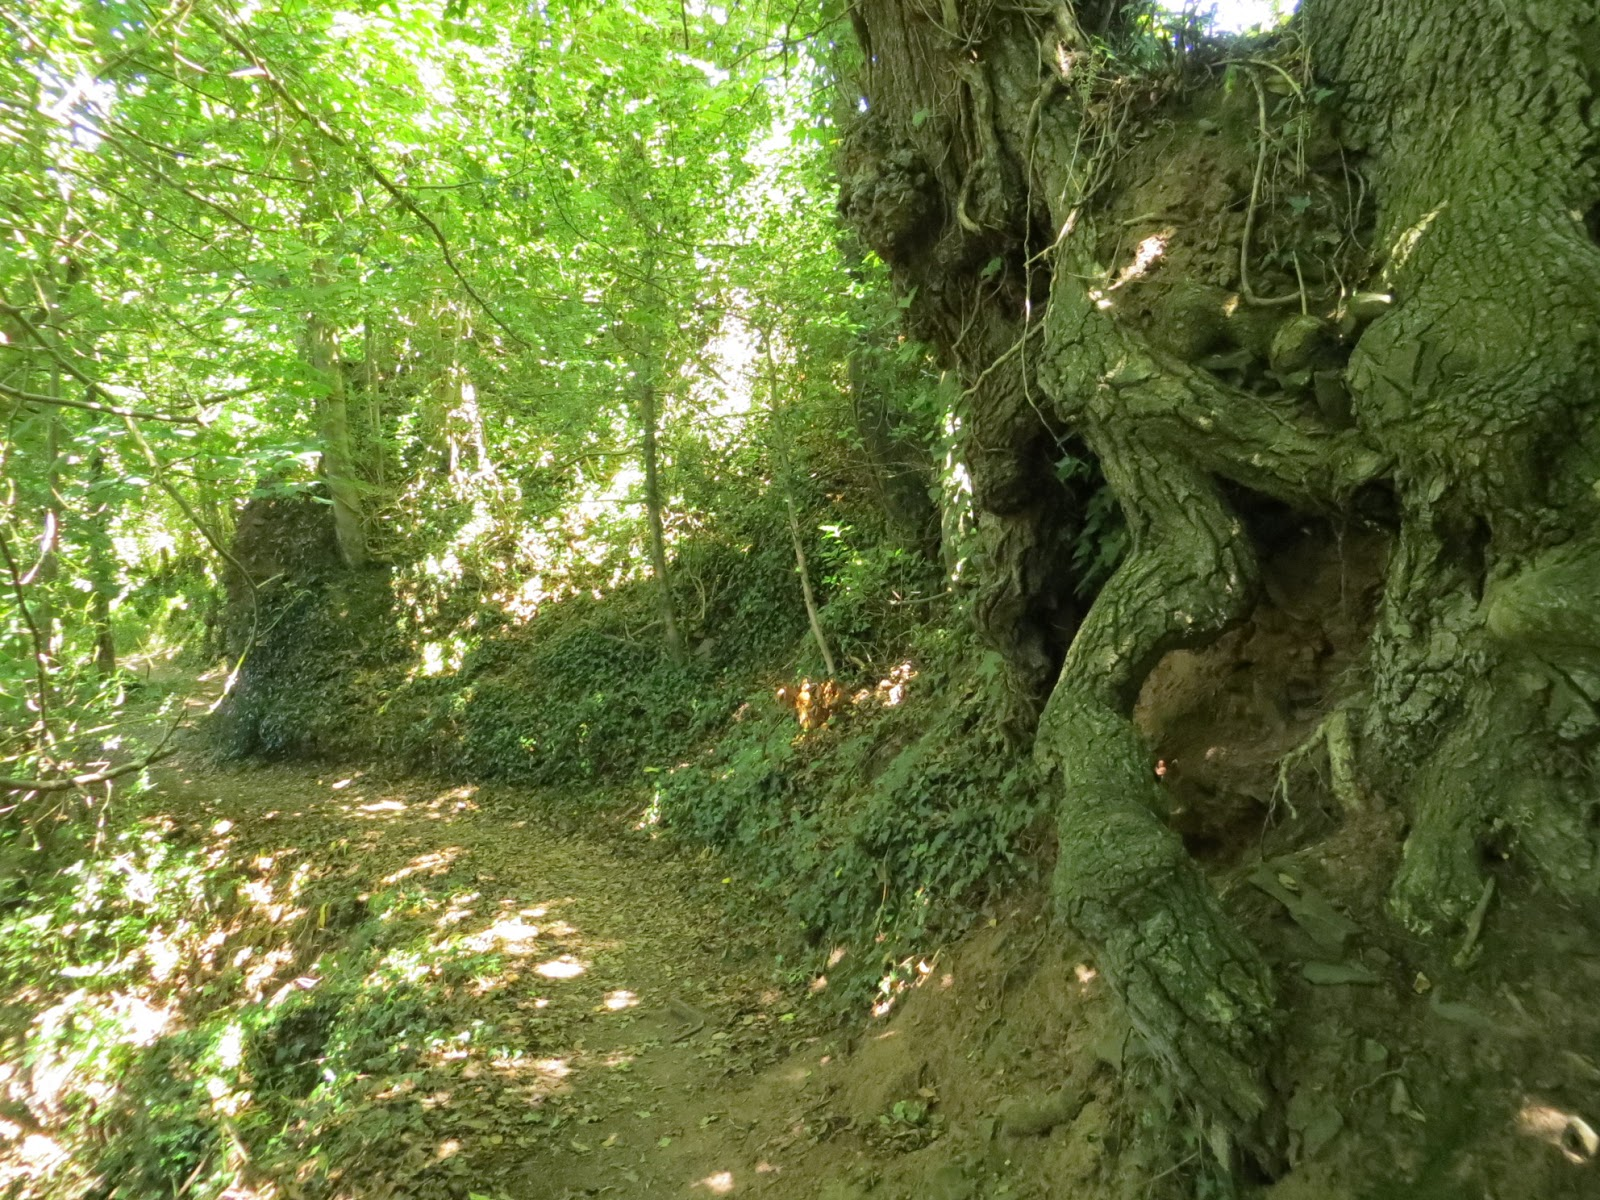 The Faery Folklorist: The Fairies and Pixies of Exmoor